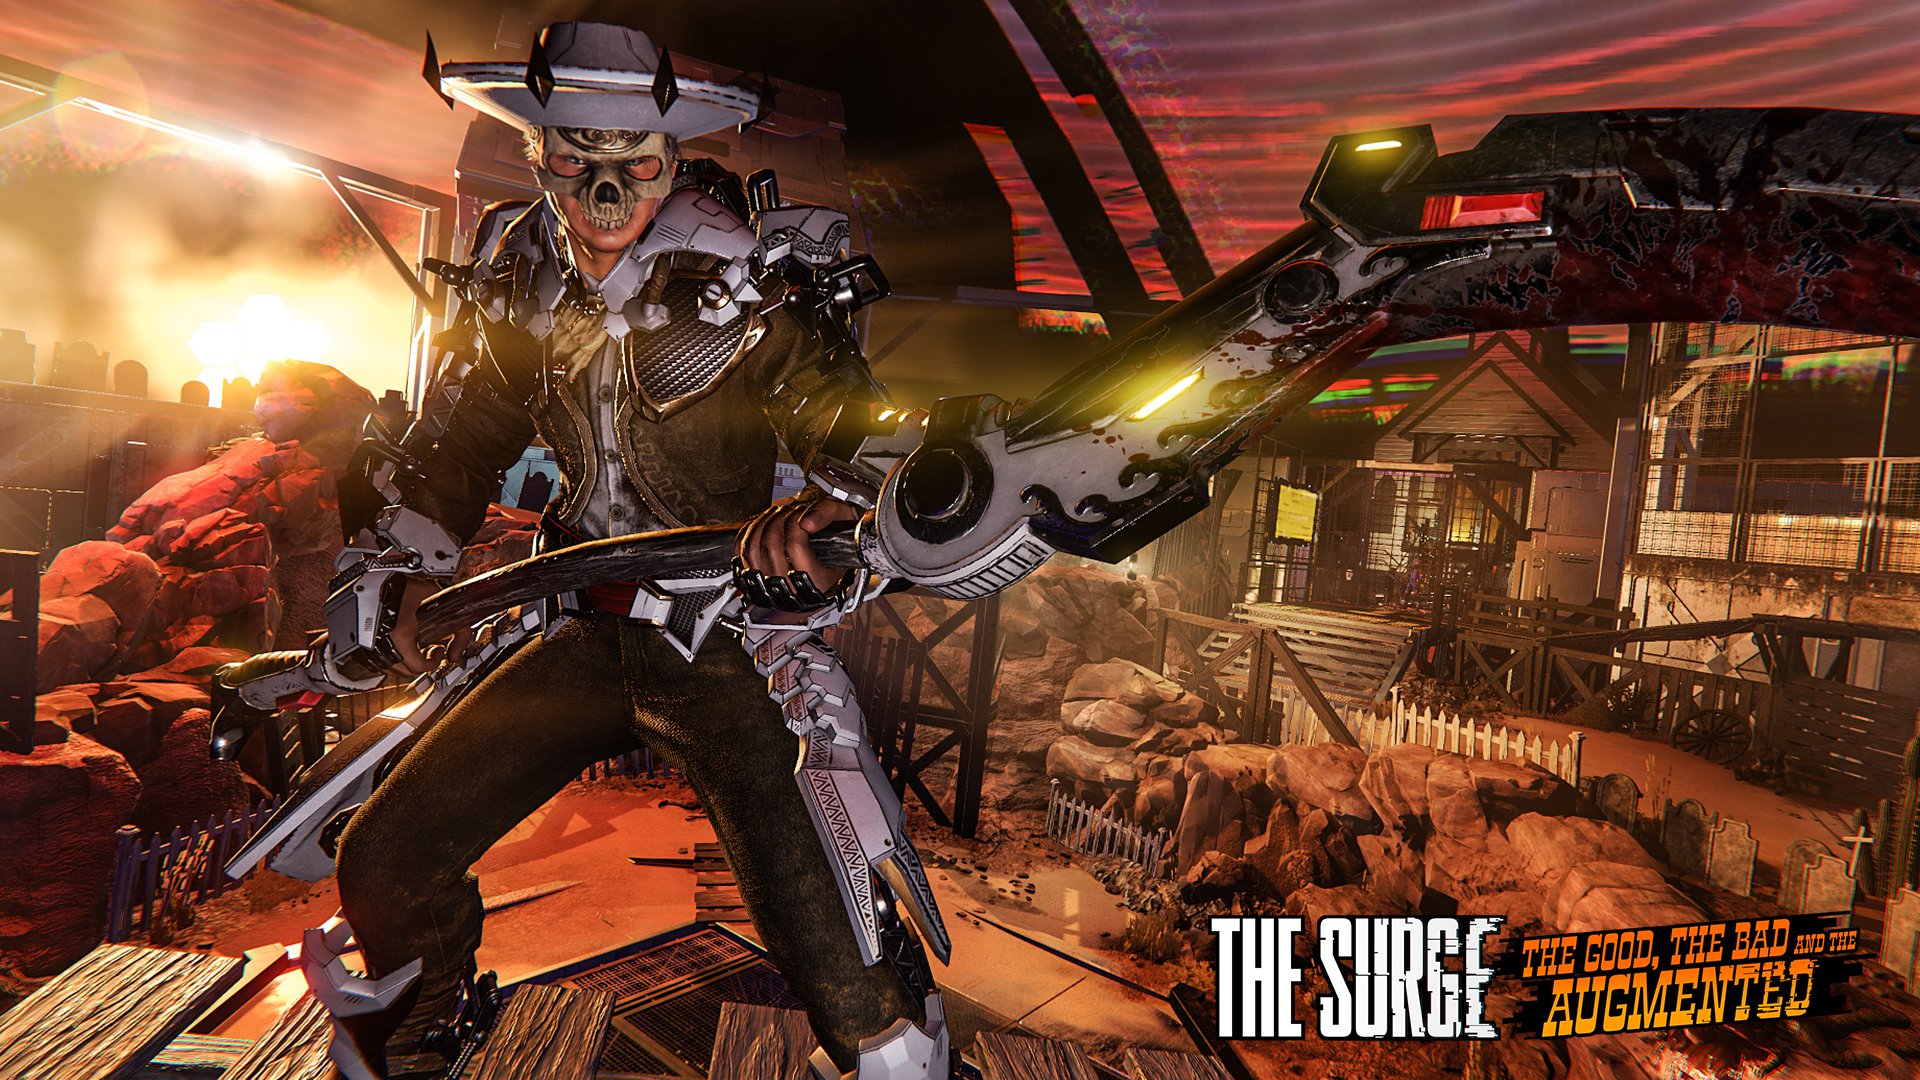 The Surge The Good The Bad, And The Augmented 1